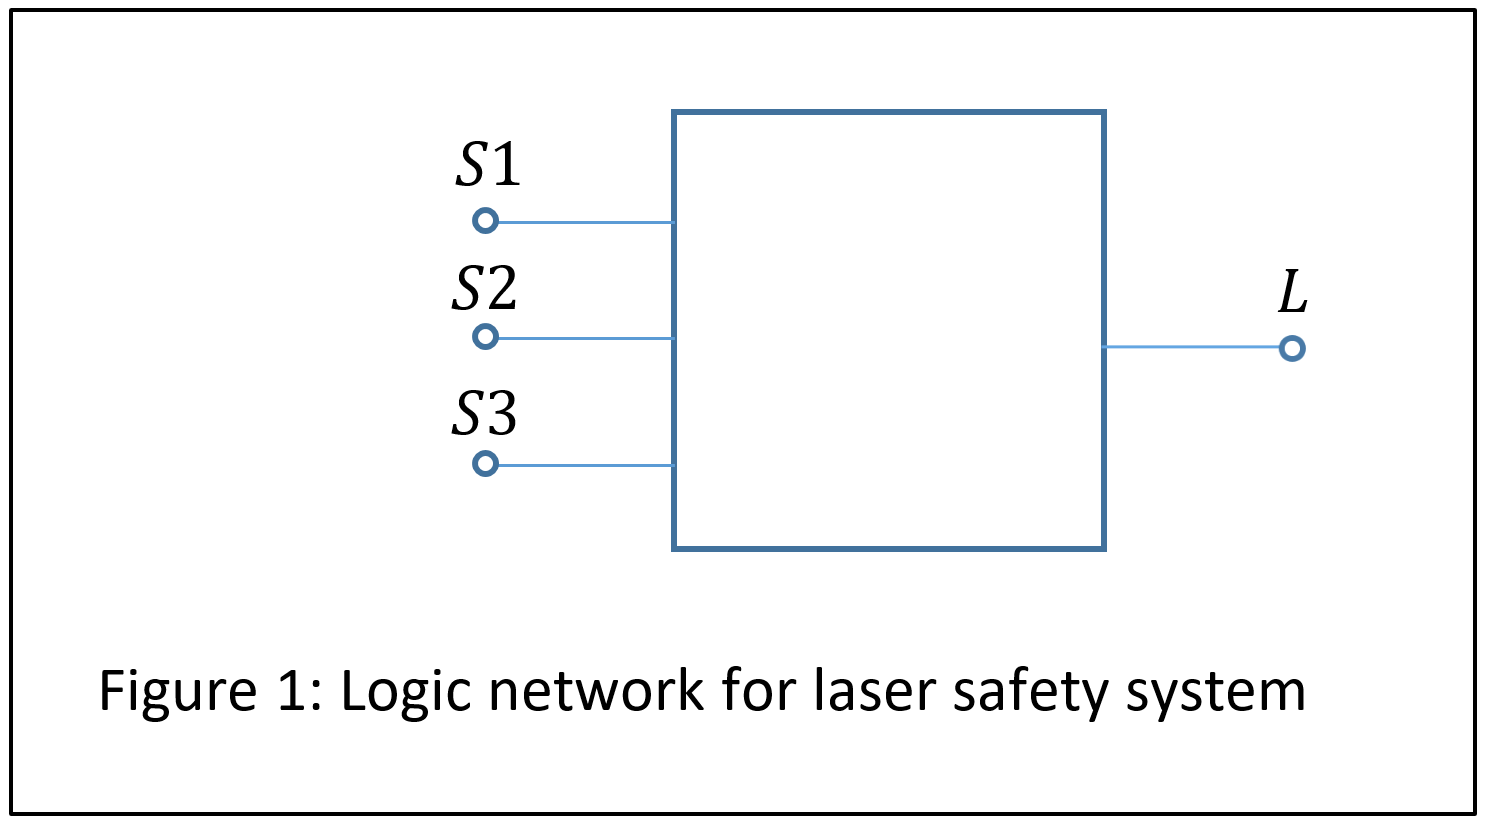 hight resolution of figure 1 logic network for laser safety system click to expand